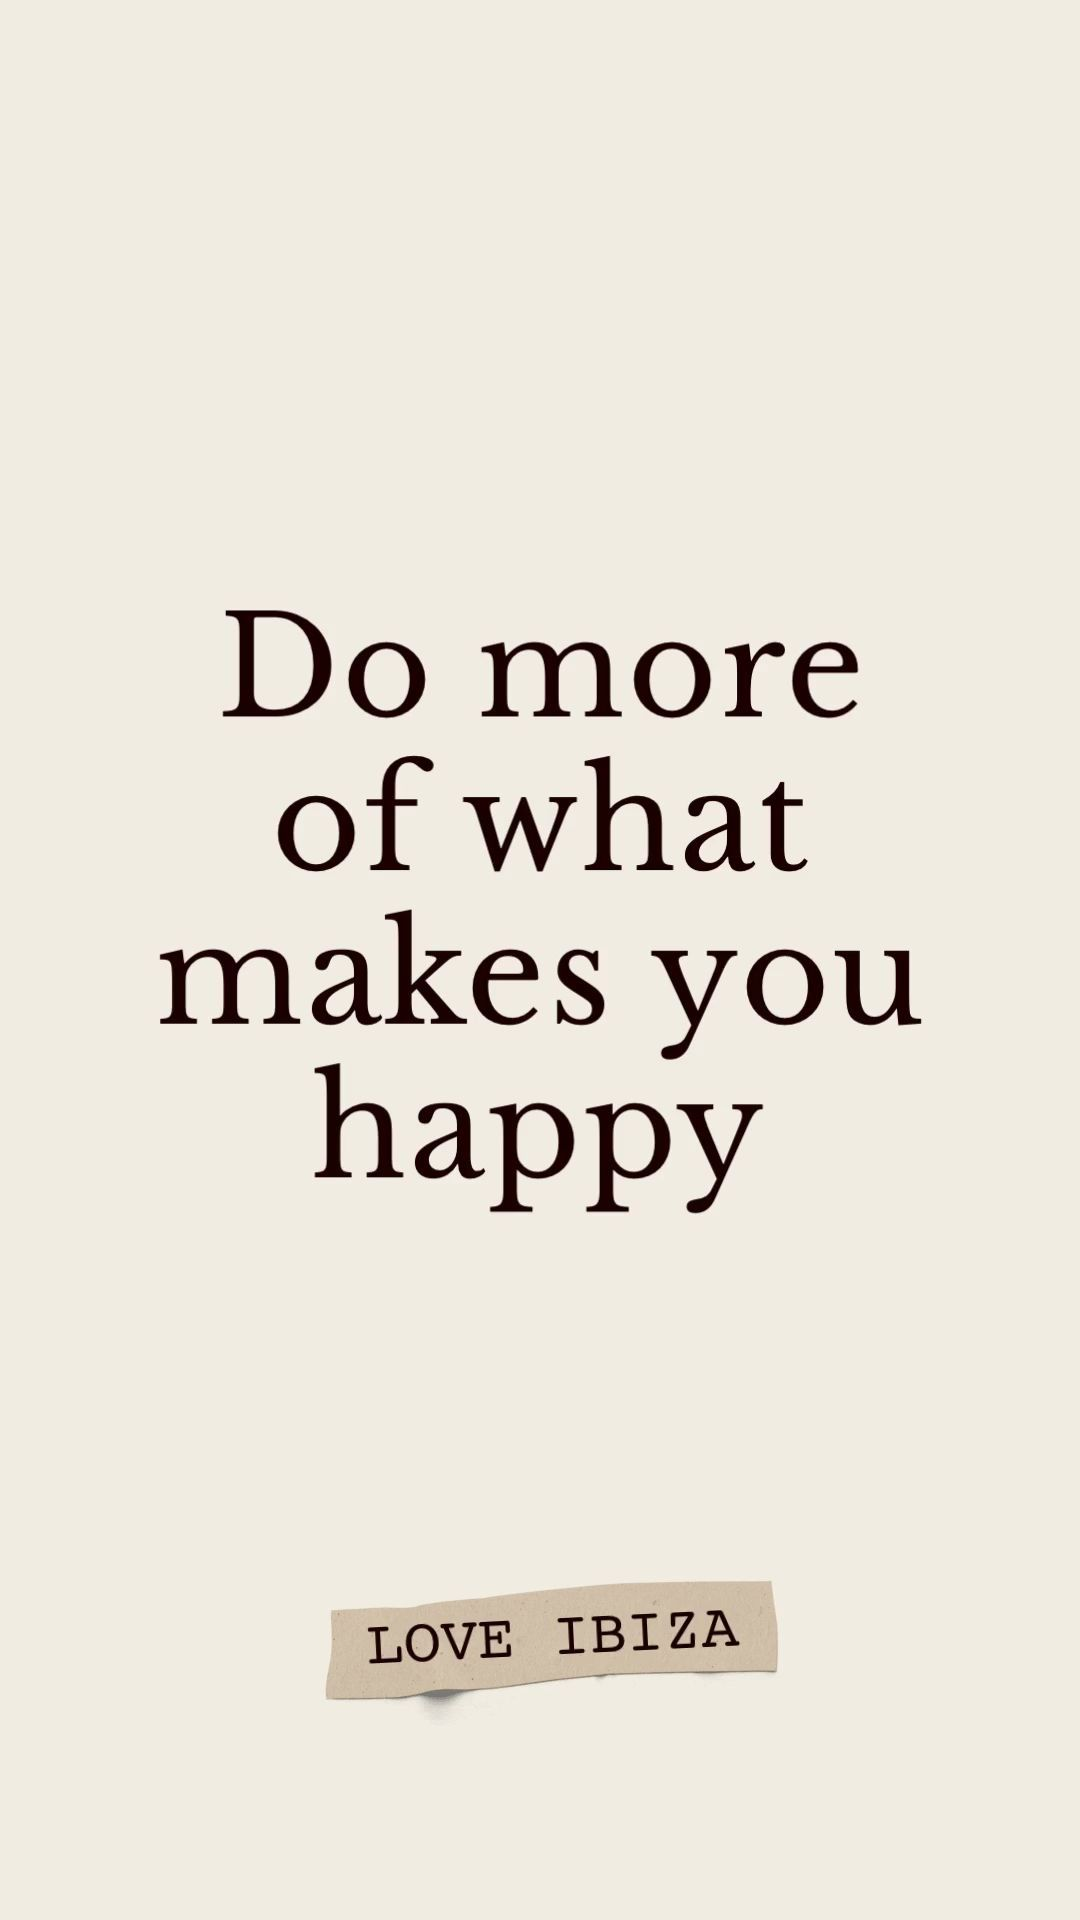 Do more of what makes you happy - Social Media Detox 2020